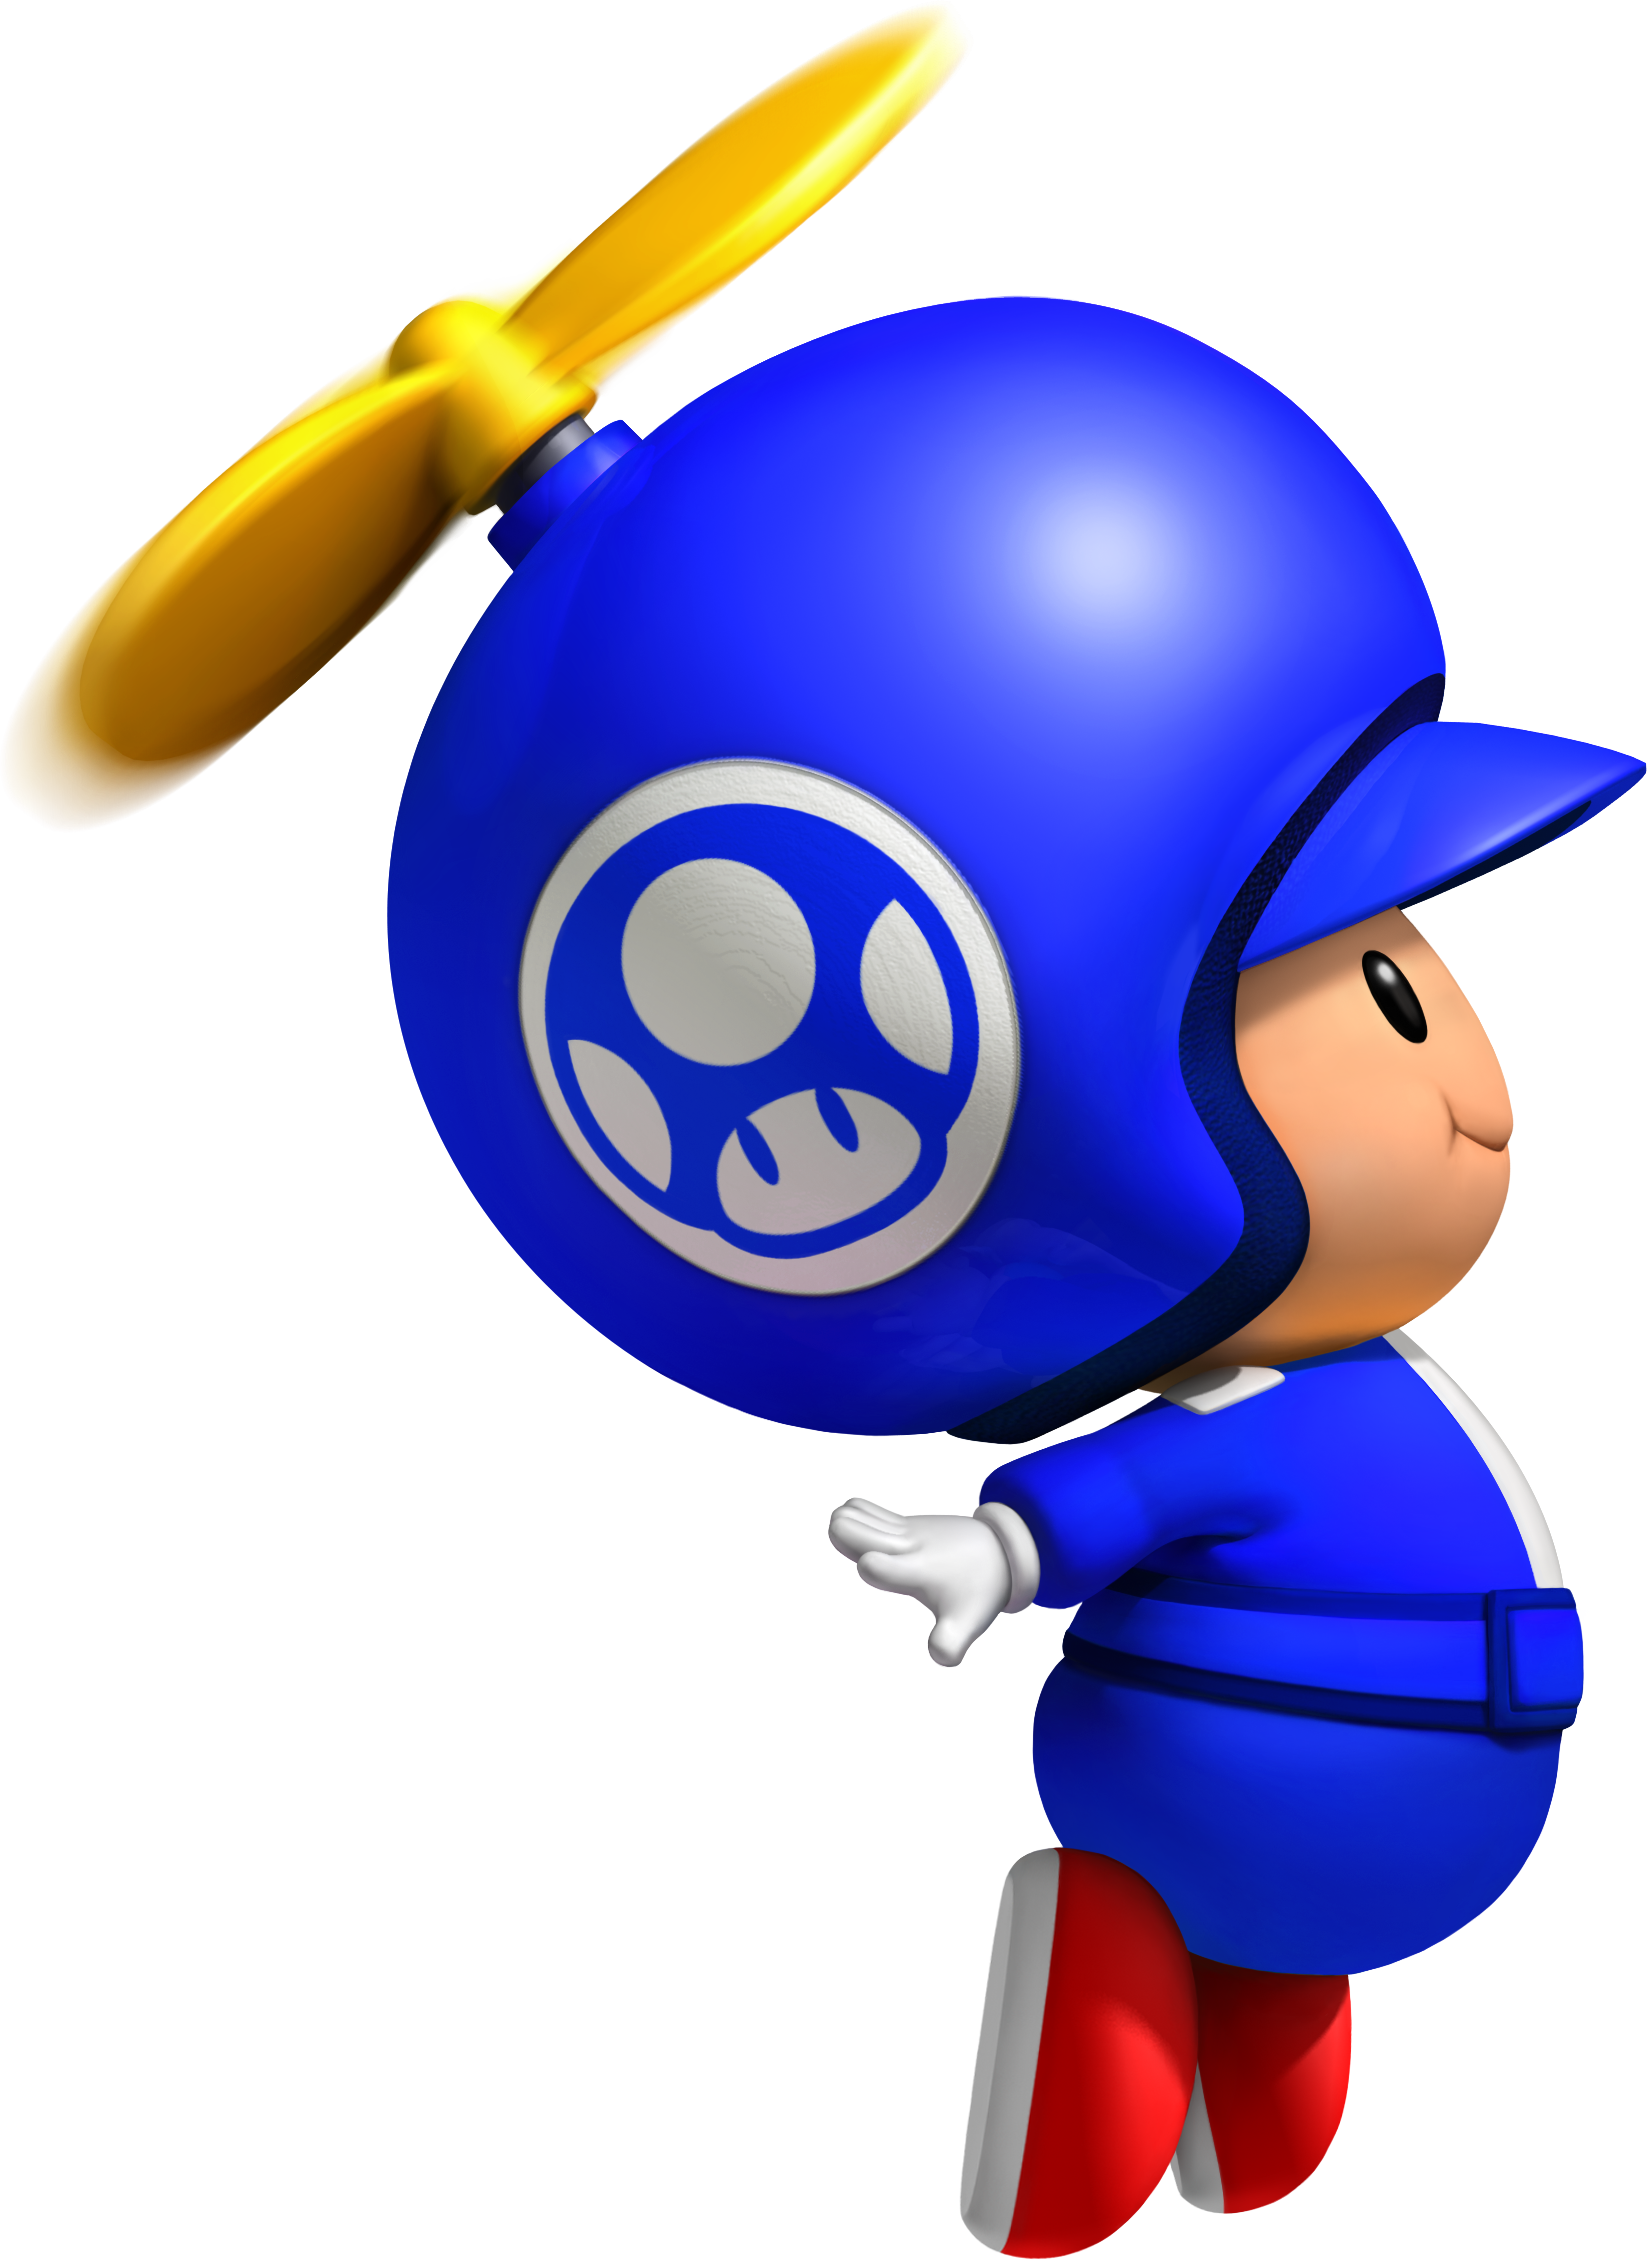 Toad clipart colouring page. Image propeller blue png